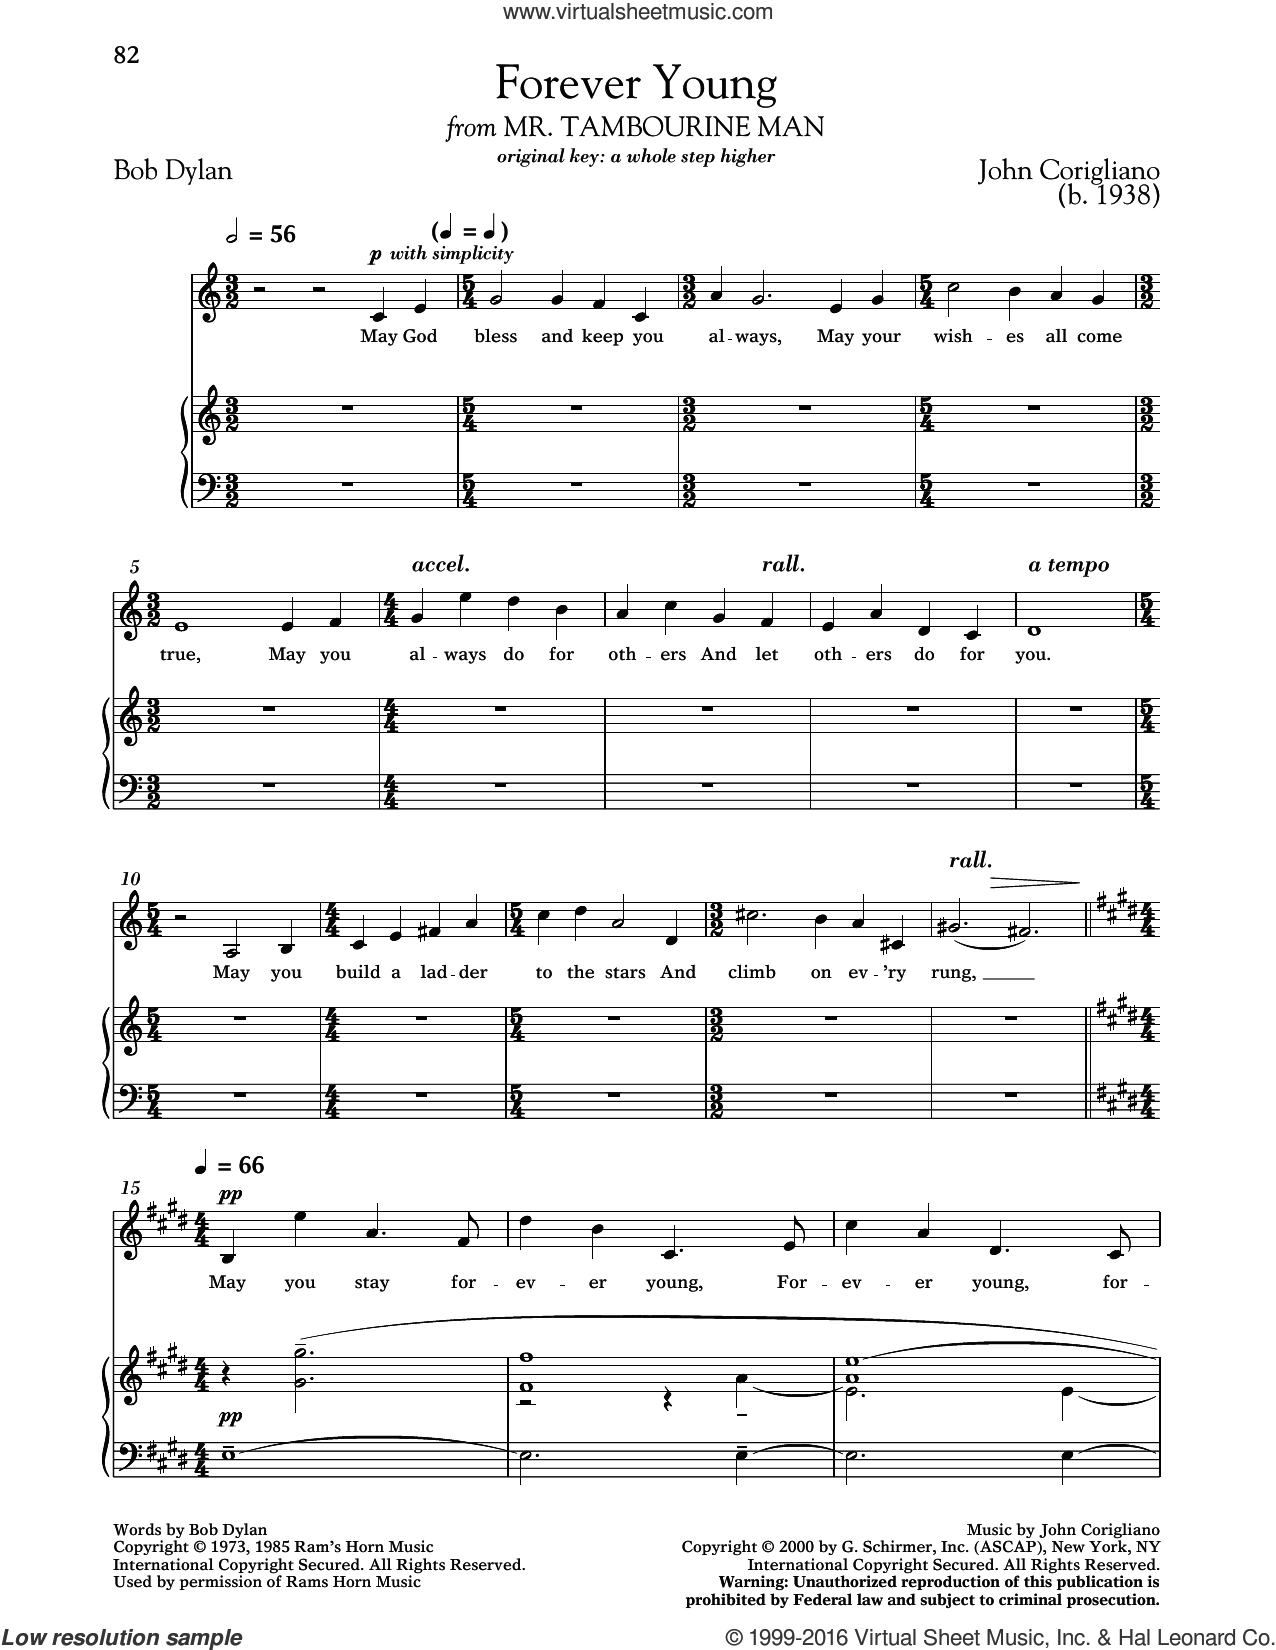 Forever Young sheet music for voice and piano (Low ) by Bob Dylan, Richard Walters and John Corigliano. Score Image Preview.